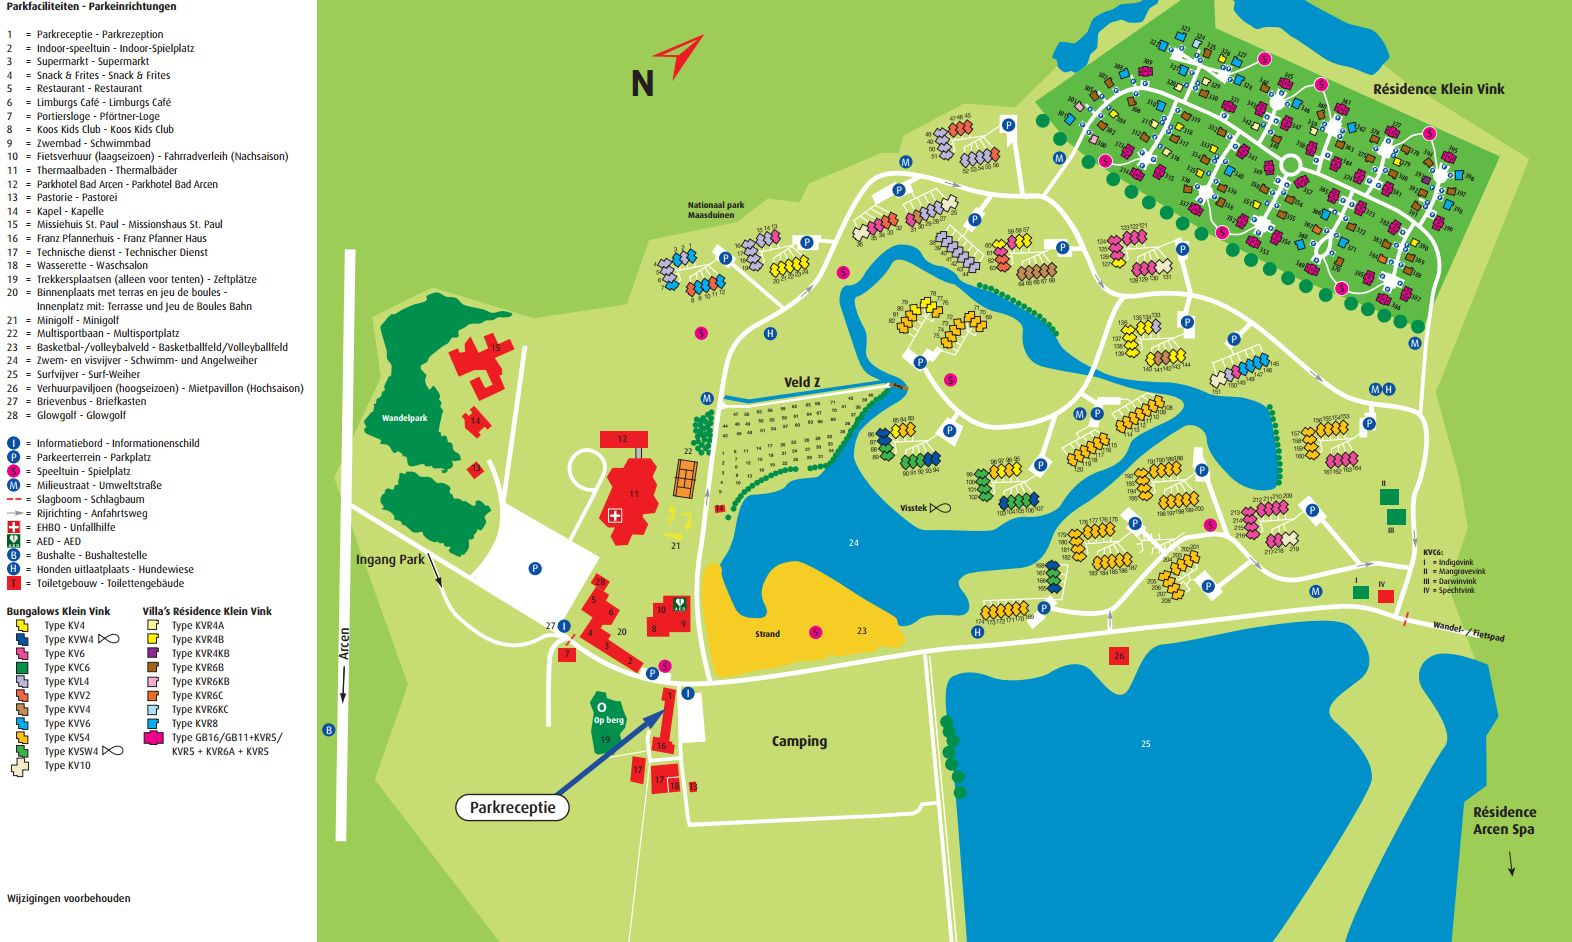 Zwembad Arcen Openingstijden Roompot Bungalowpark Klein Vink Map Ground Plan The Best Offers